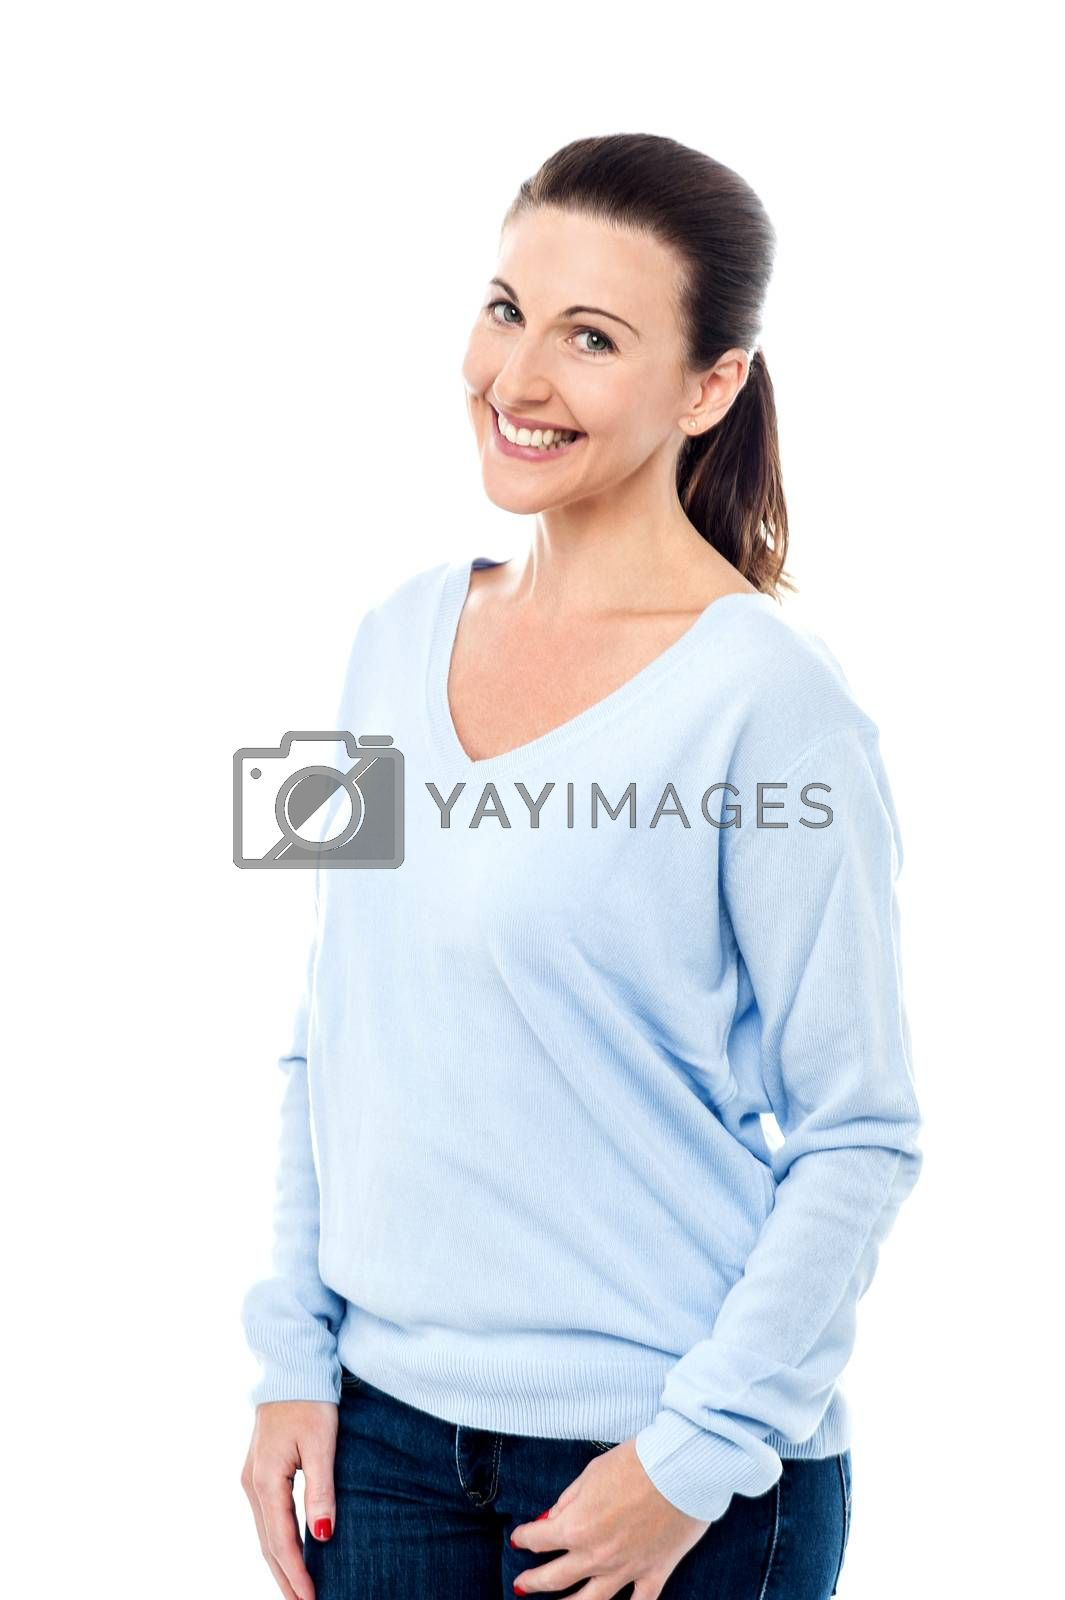 Fashionable woman posing with hands in pockets